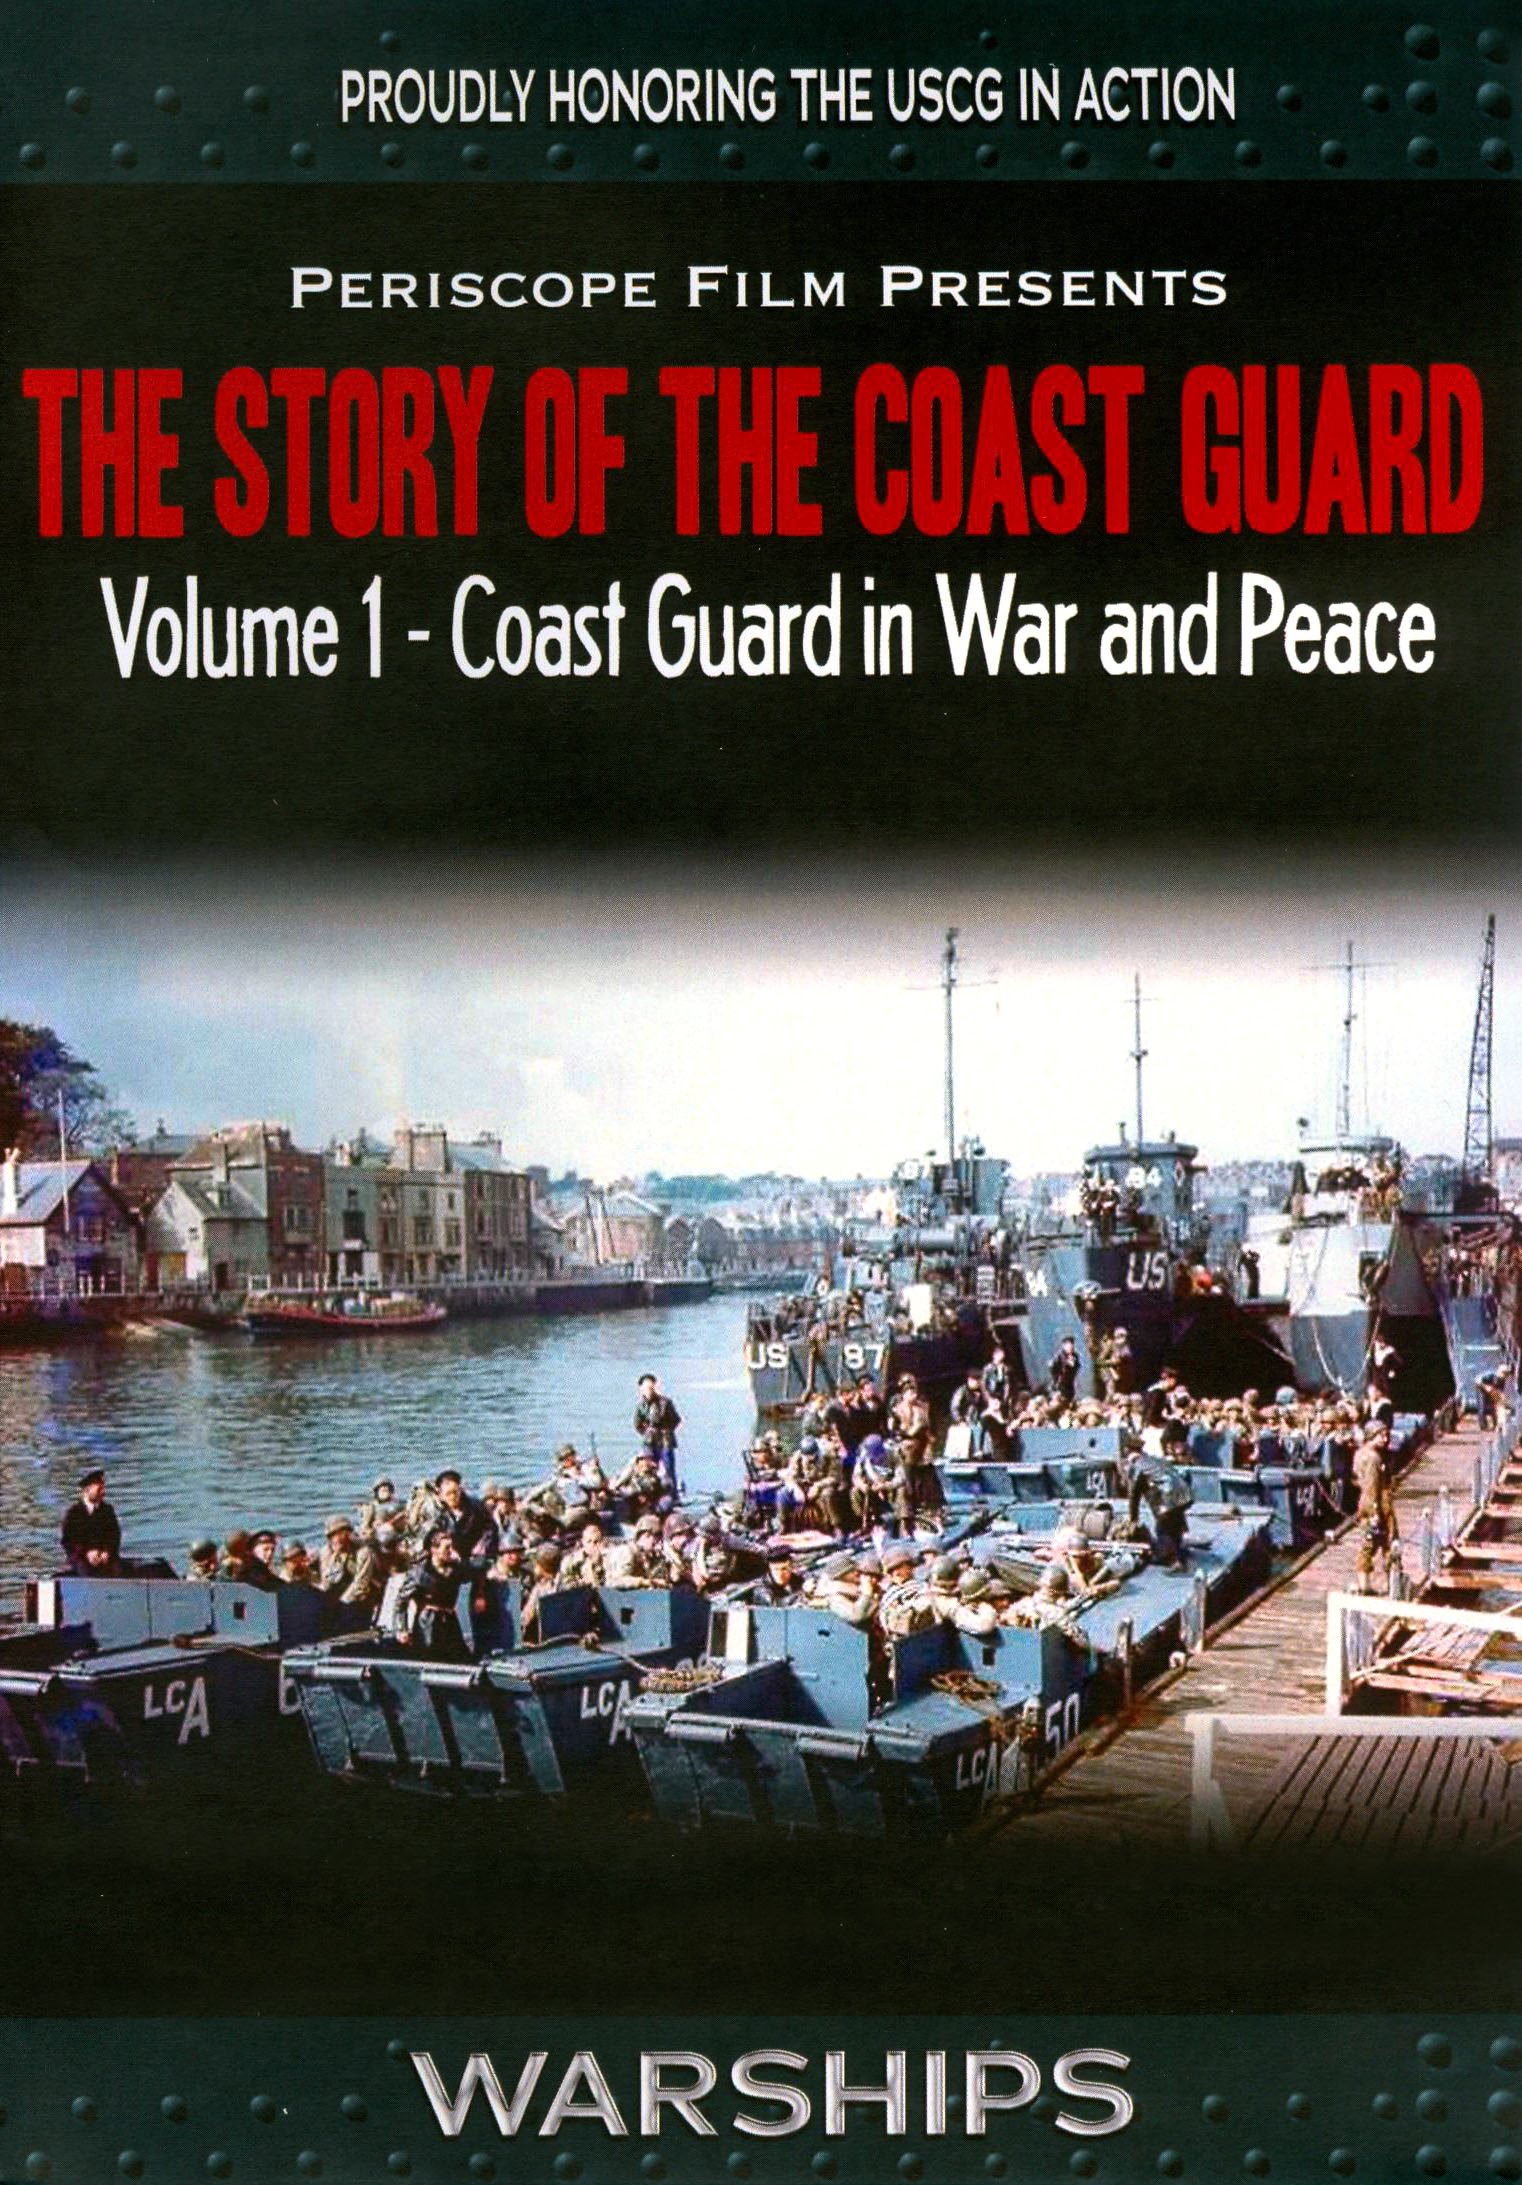 Story of the Coast Guard: 1935-1960, Vol. 1